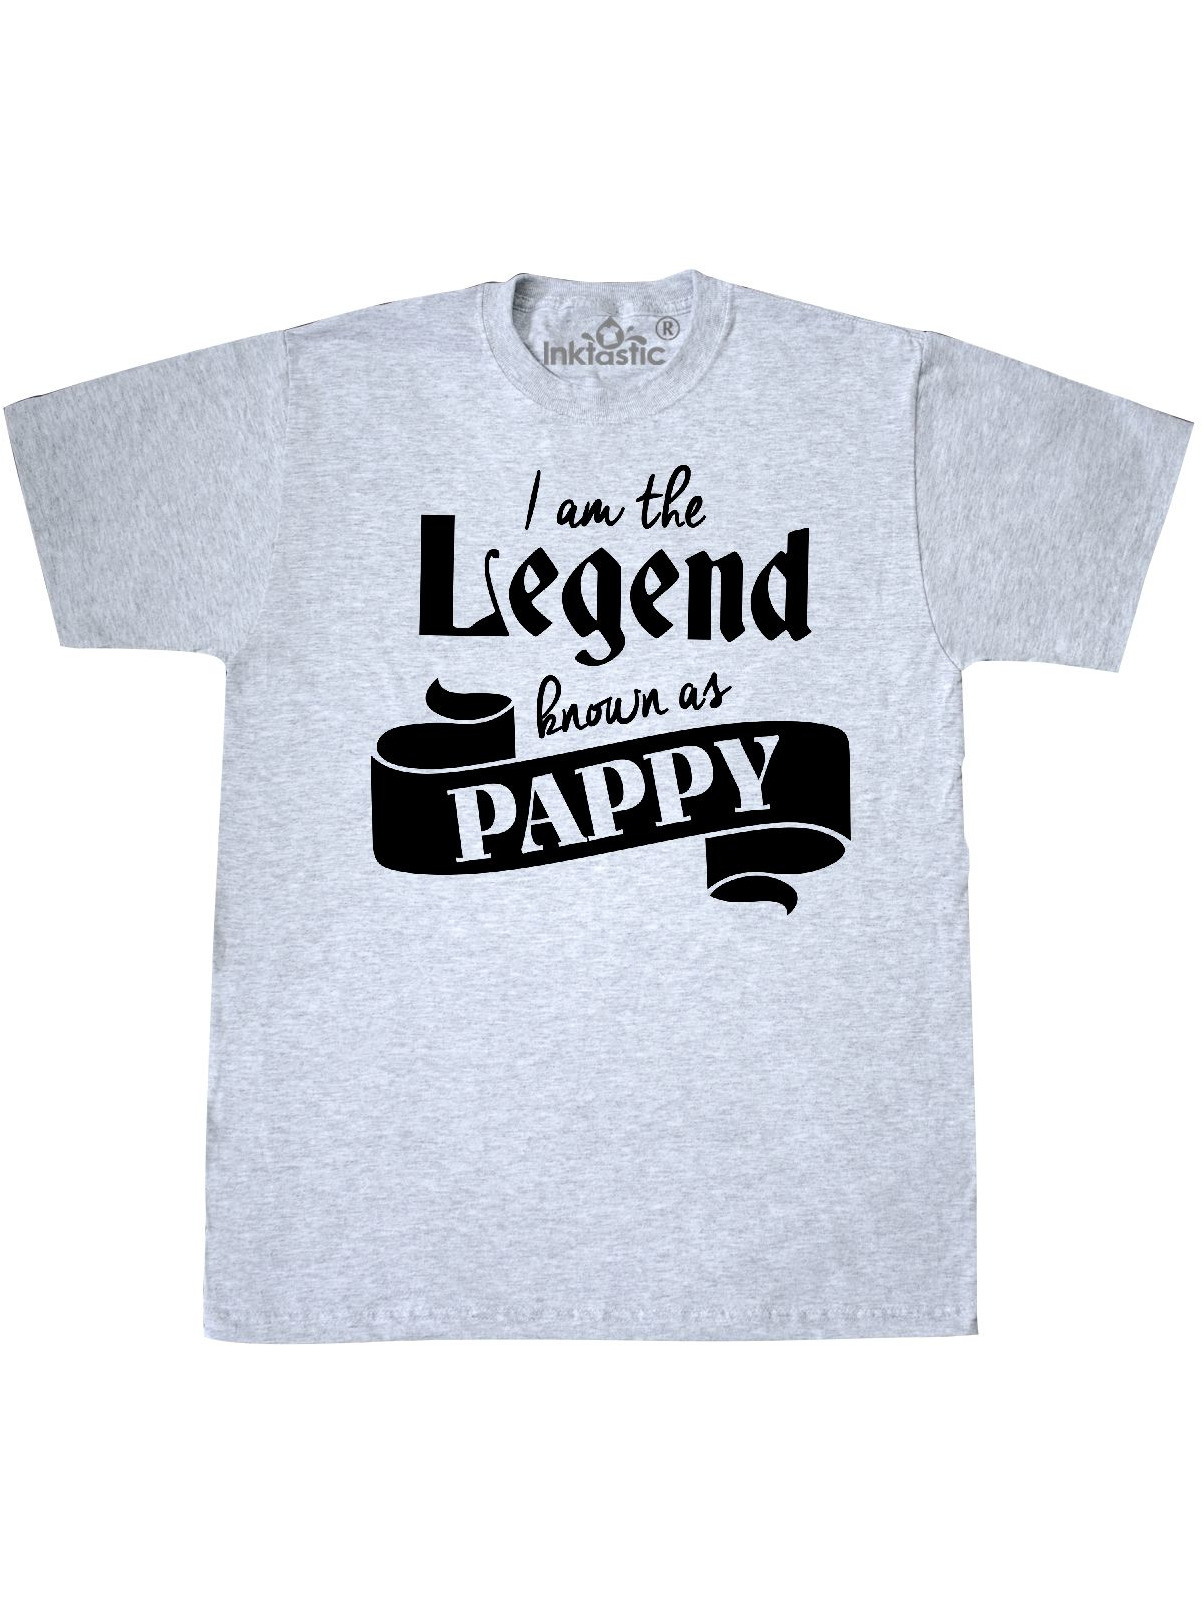 FINGERS SMALL WRAP PAPA KIDS T-Shirt JERSEYS  Size 6 Months To 18-20 The Best